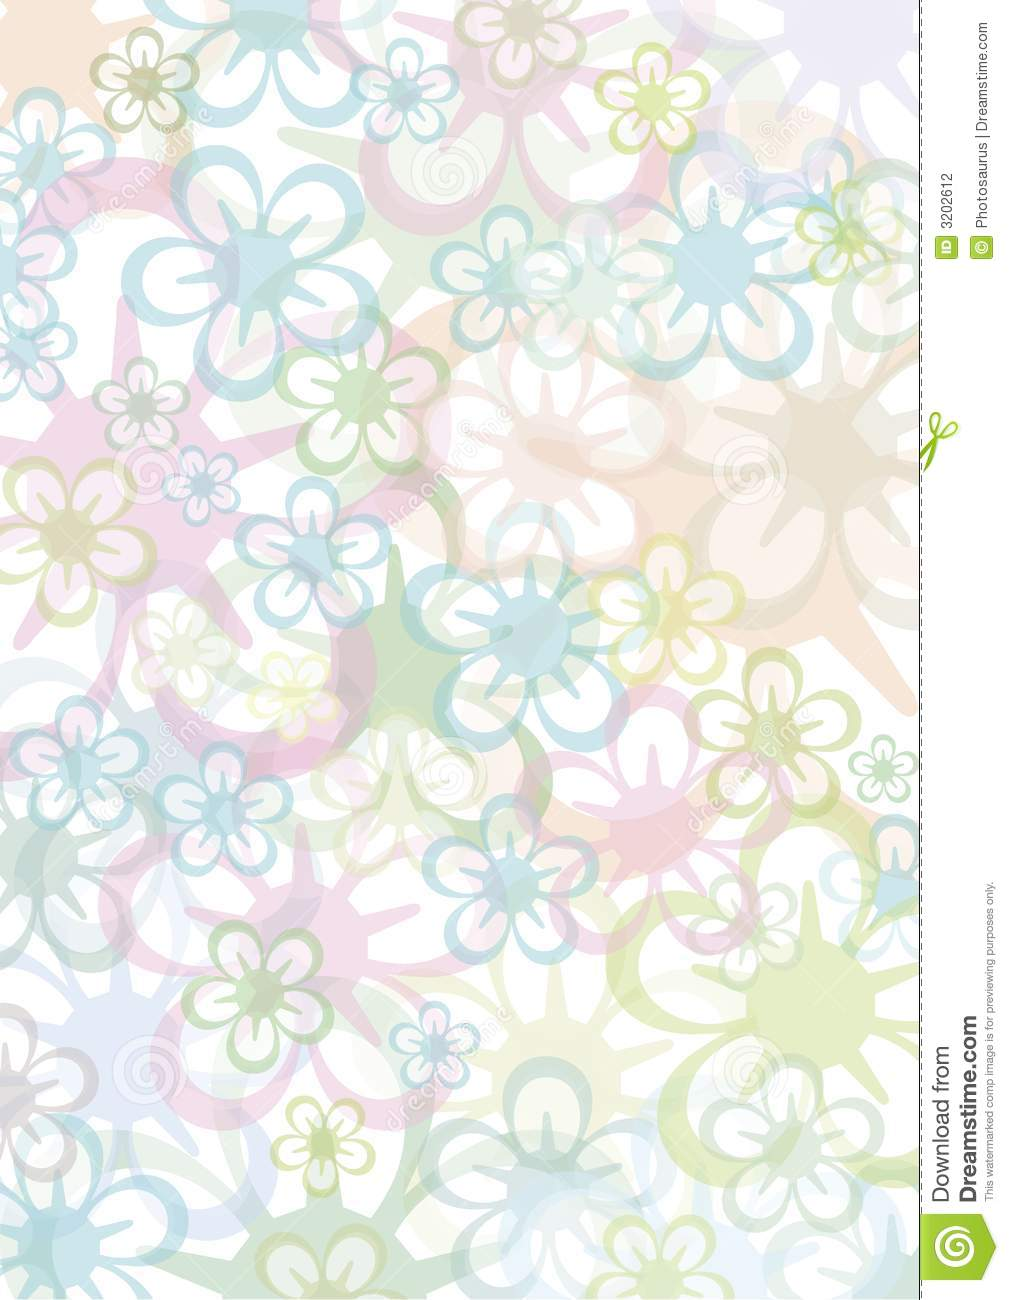 Pastell floral background